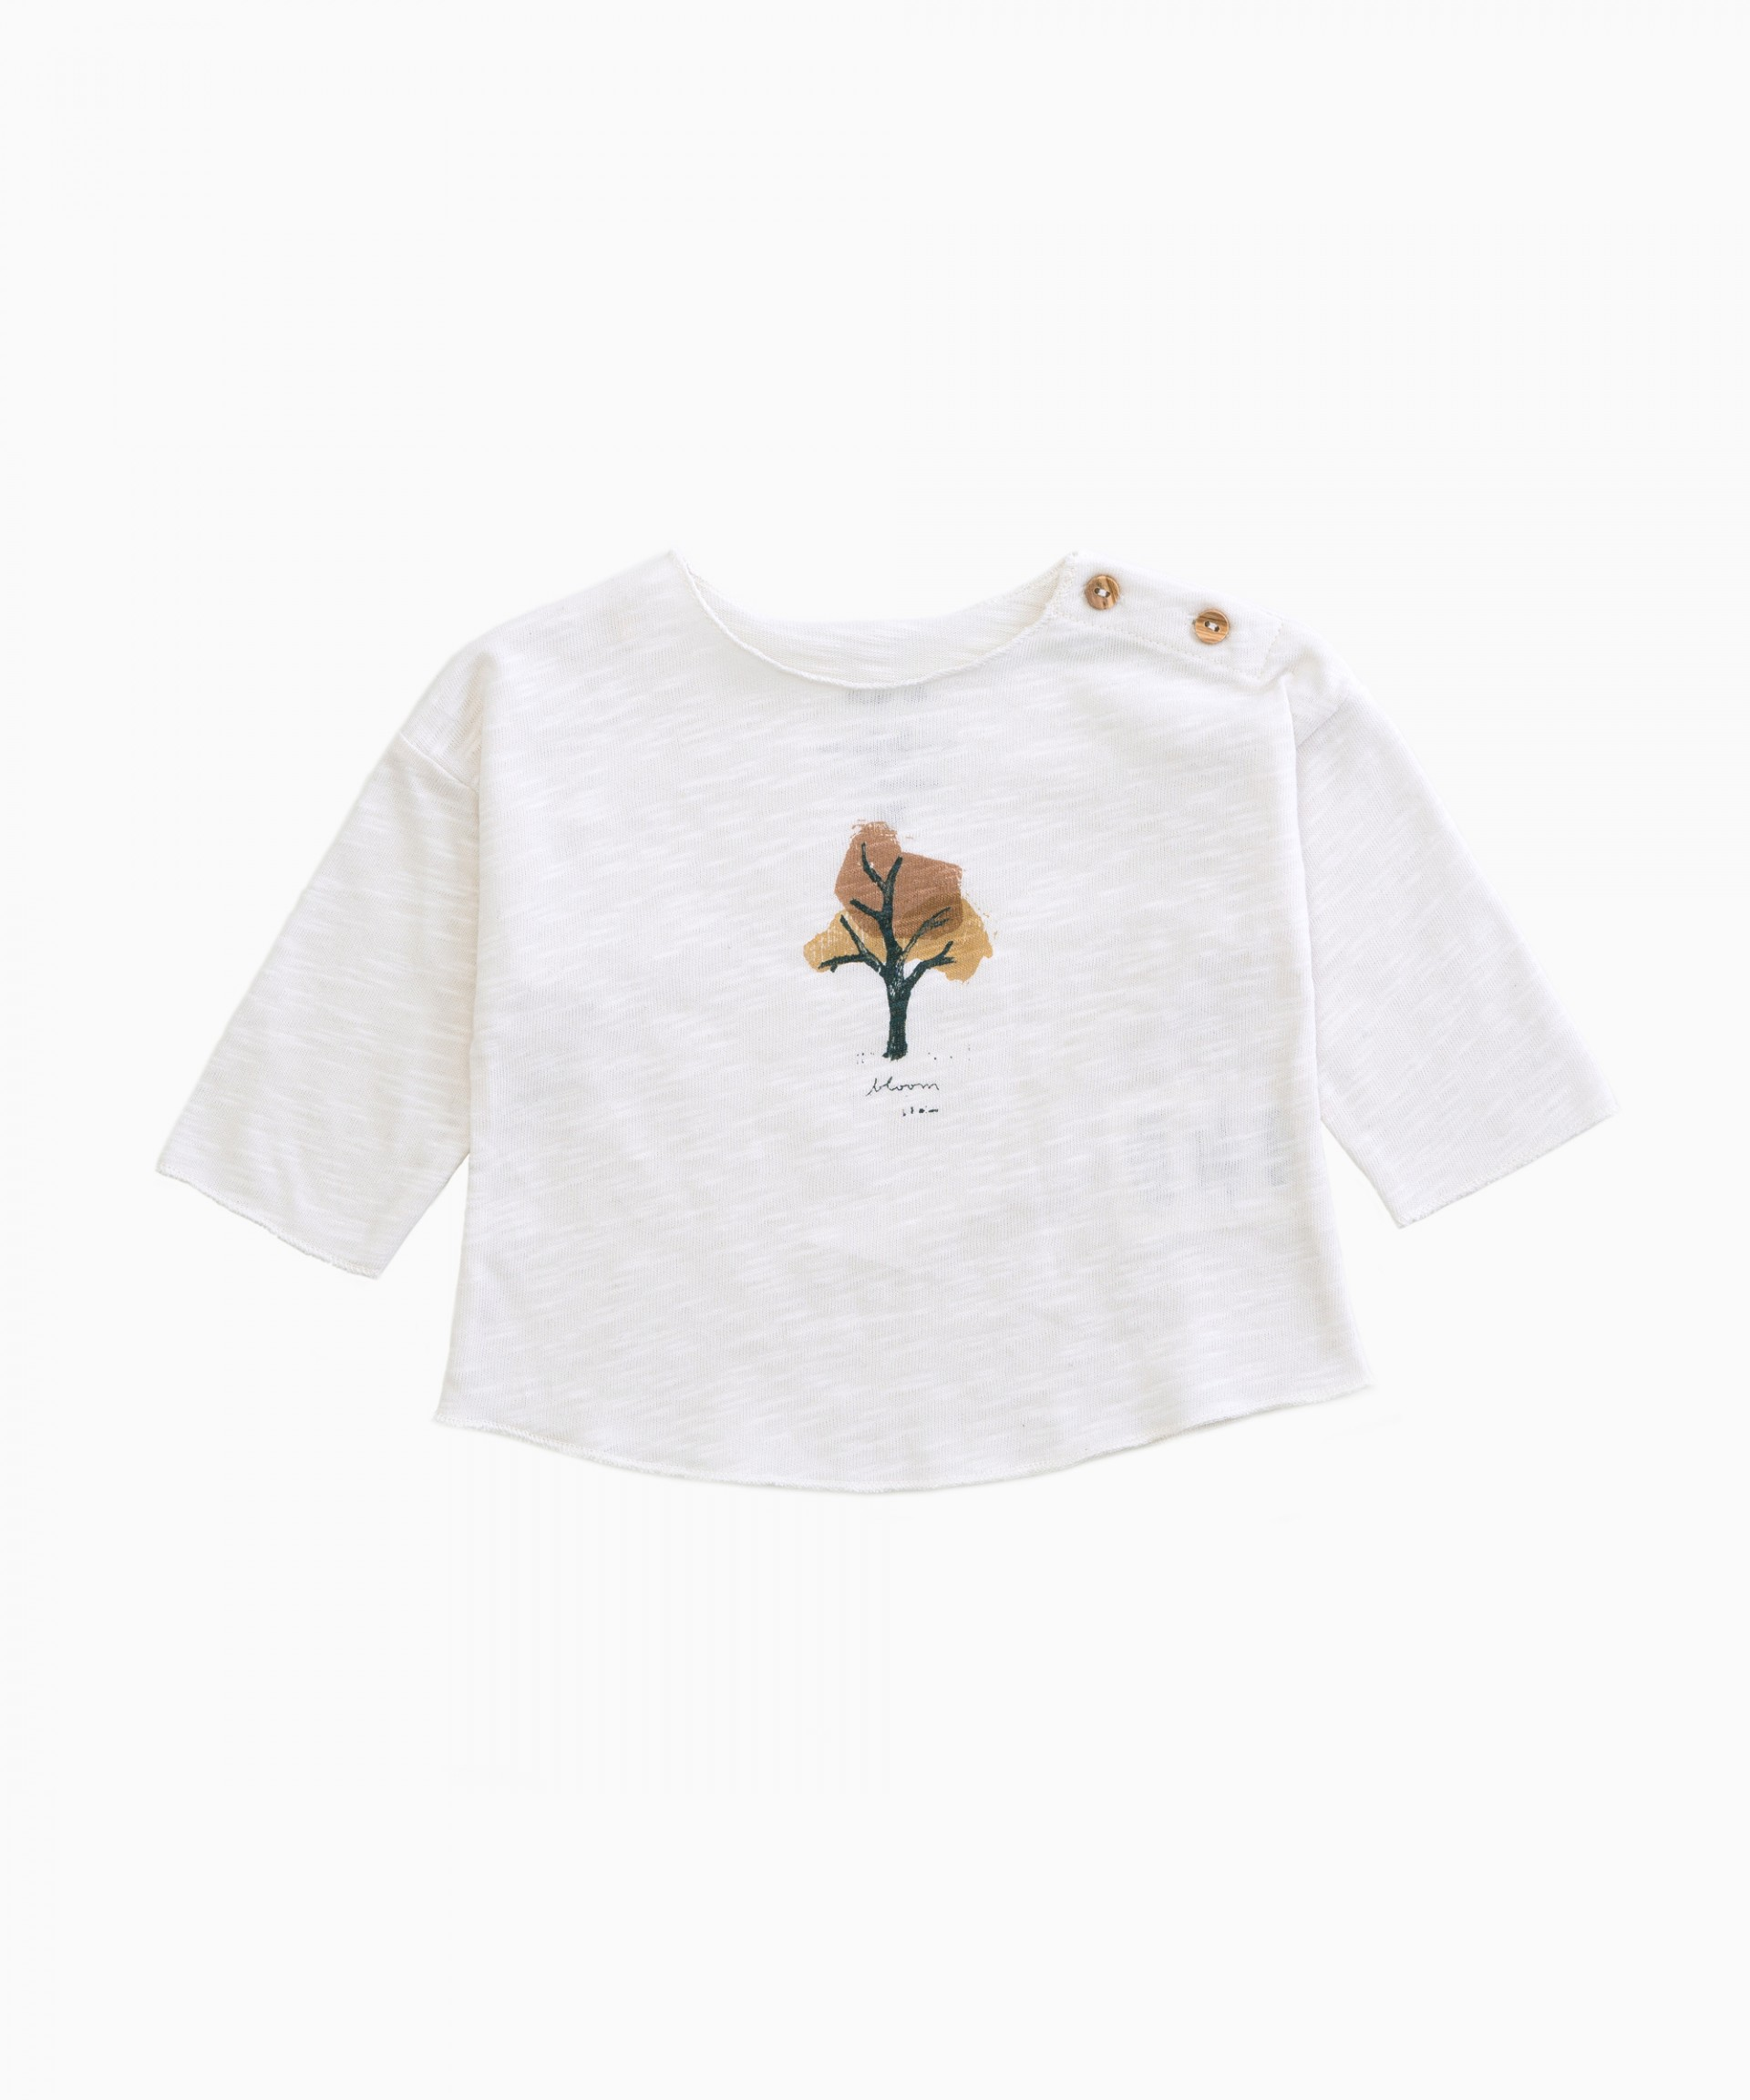 Printed T-shirt | Woodwork